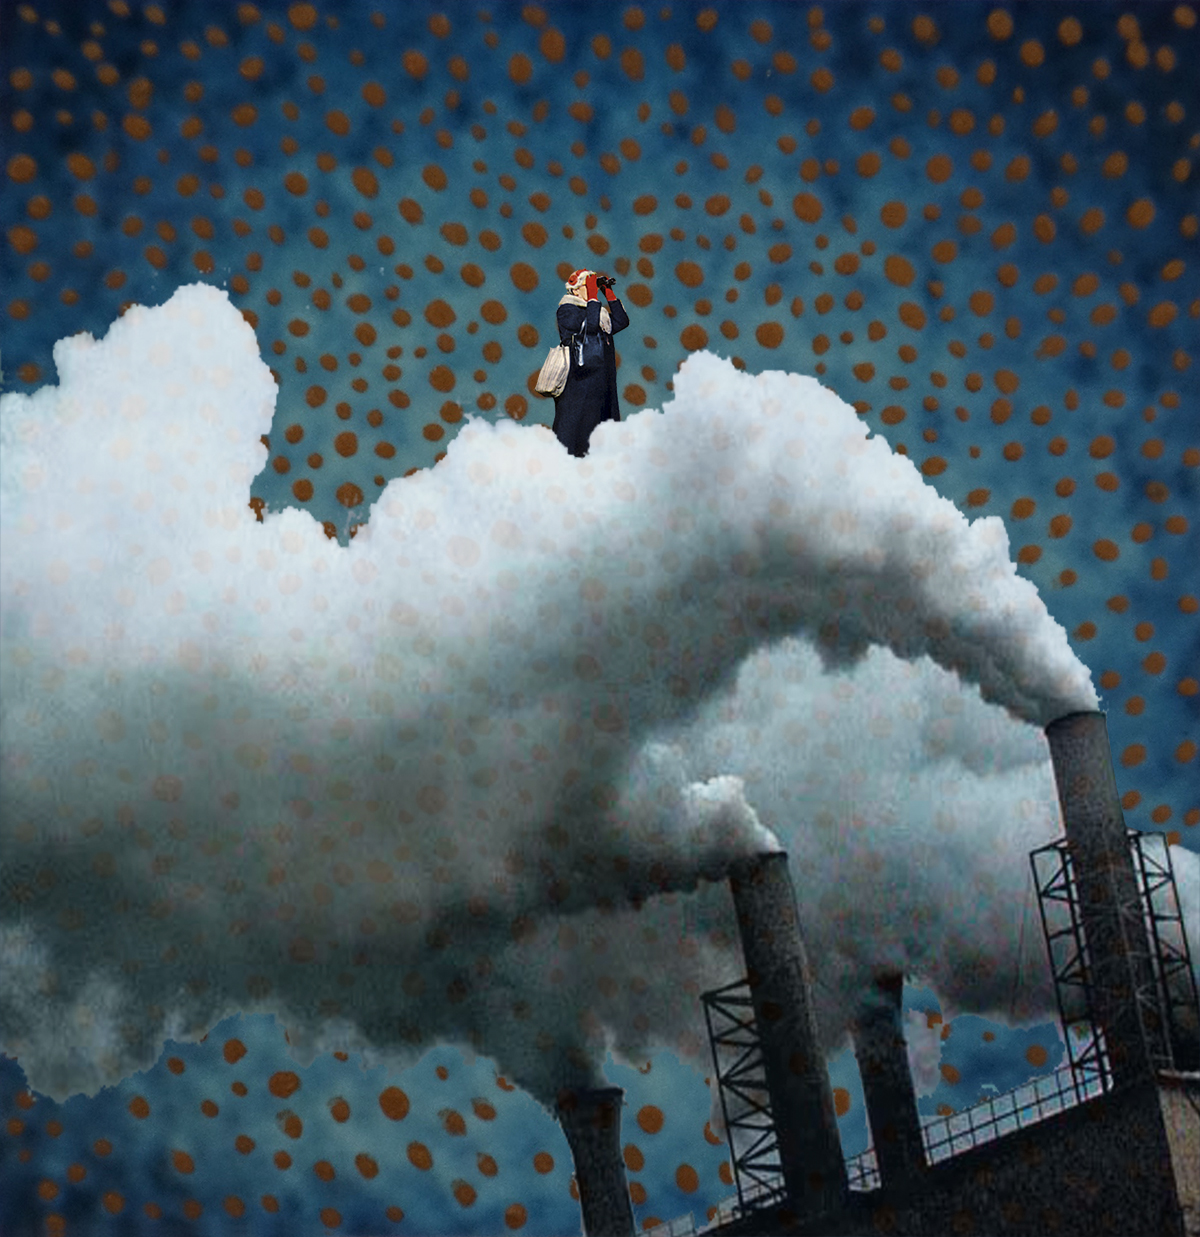 A digital collage titled Polluted of a person in a blue coat standing atop the smoke coming out of industrial smoke stacks. The background is dark blue with red orbs all around.